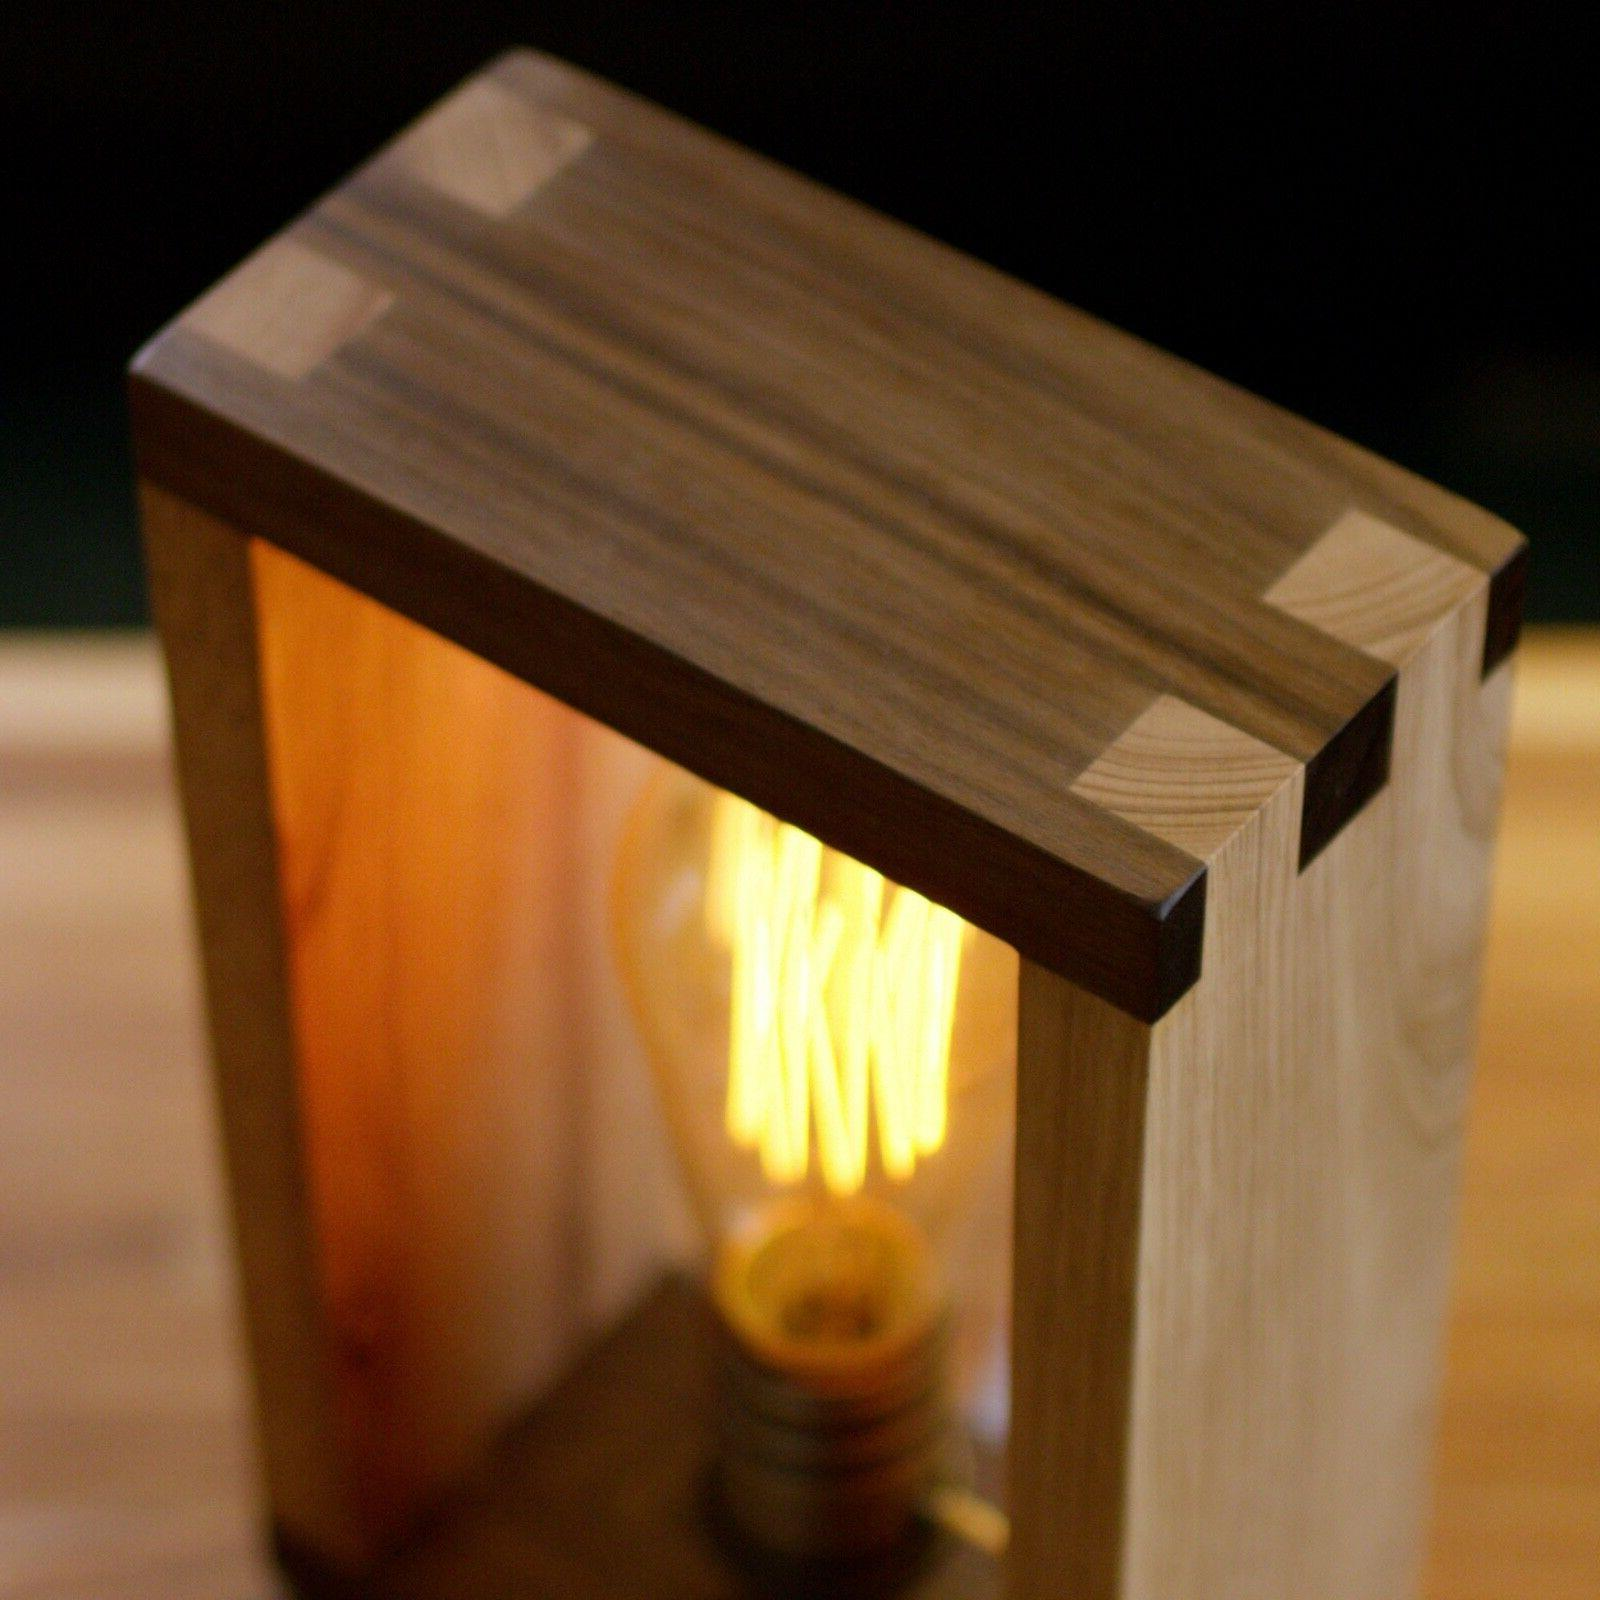 The Alto Lamp: Solid Wood Shadow Accent Desk Lamp Freeform Made